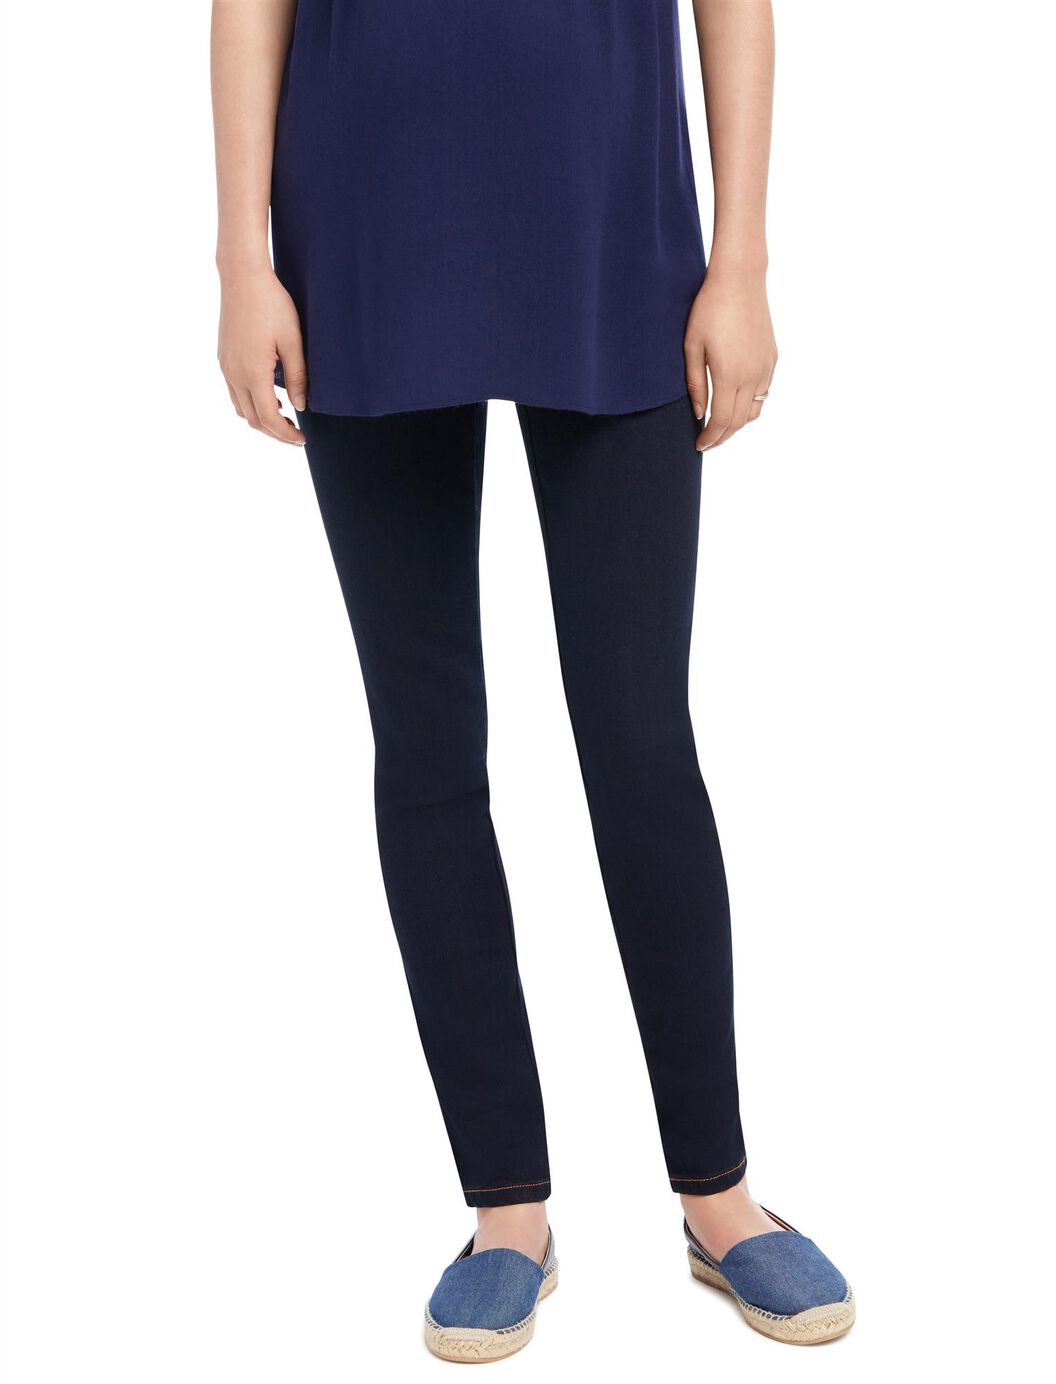 Indigo Blue Petite Skinny Leg Maternity Jeans at Motherhood Maternity in Victor, NY | Tuggl